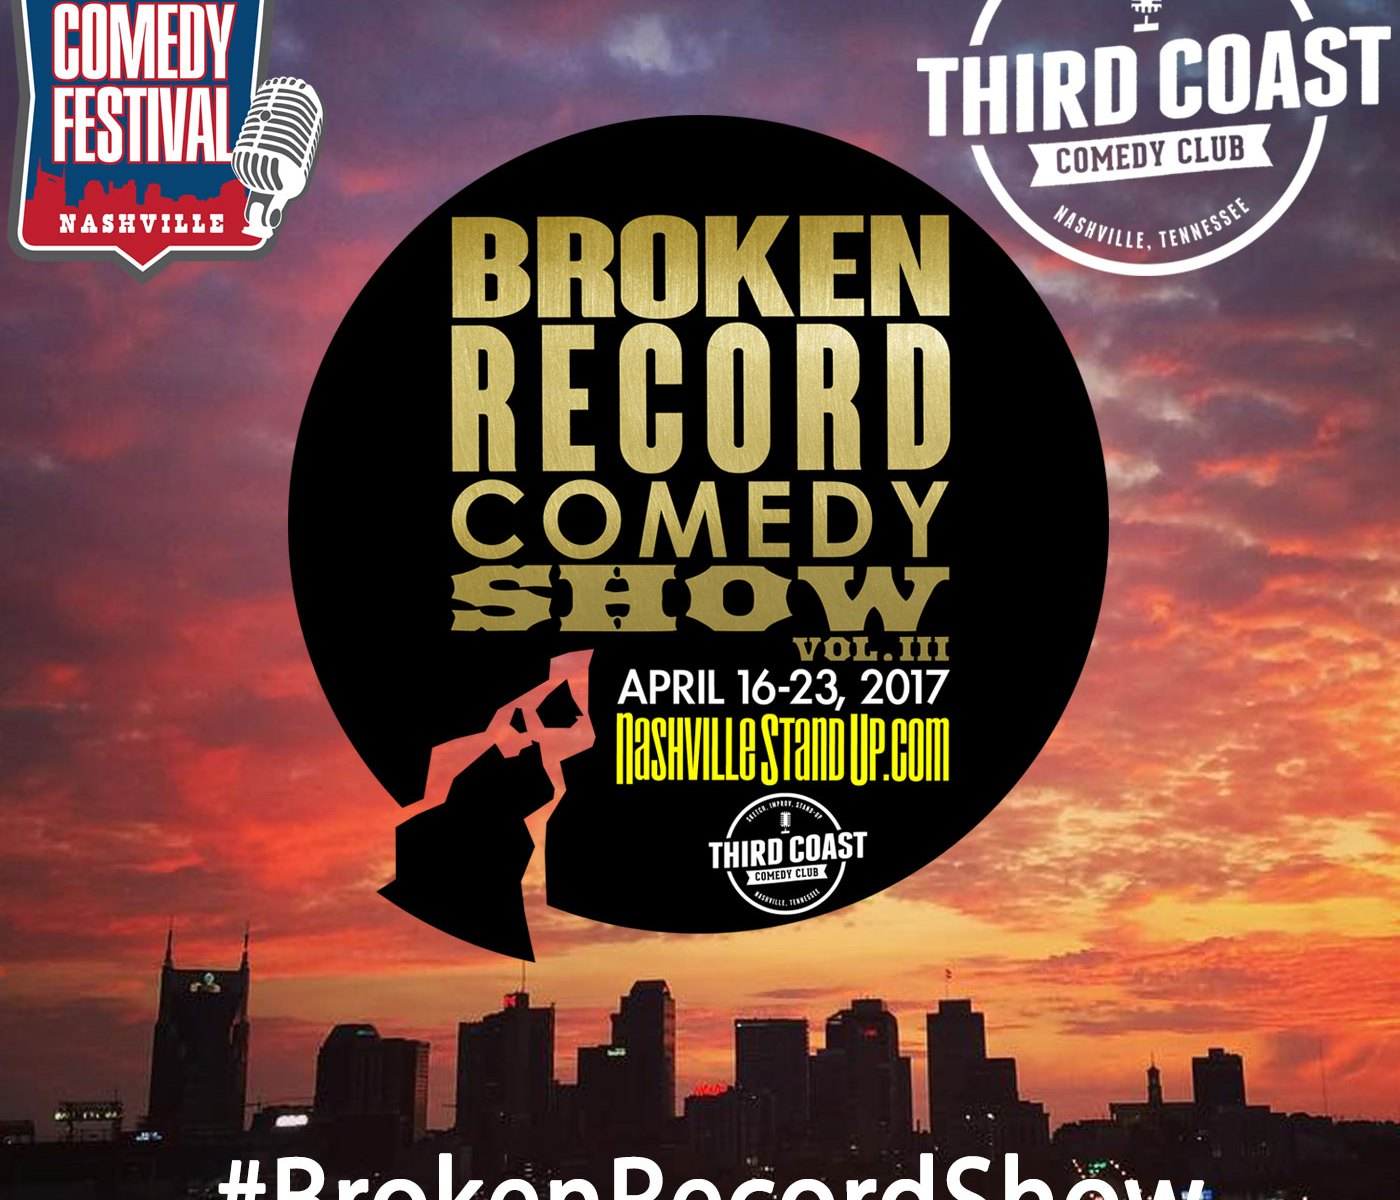 #BrokenRecordShow vol.3 April 16-23, 2017 at Third Coast Comedy Club